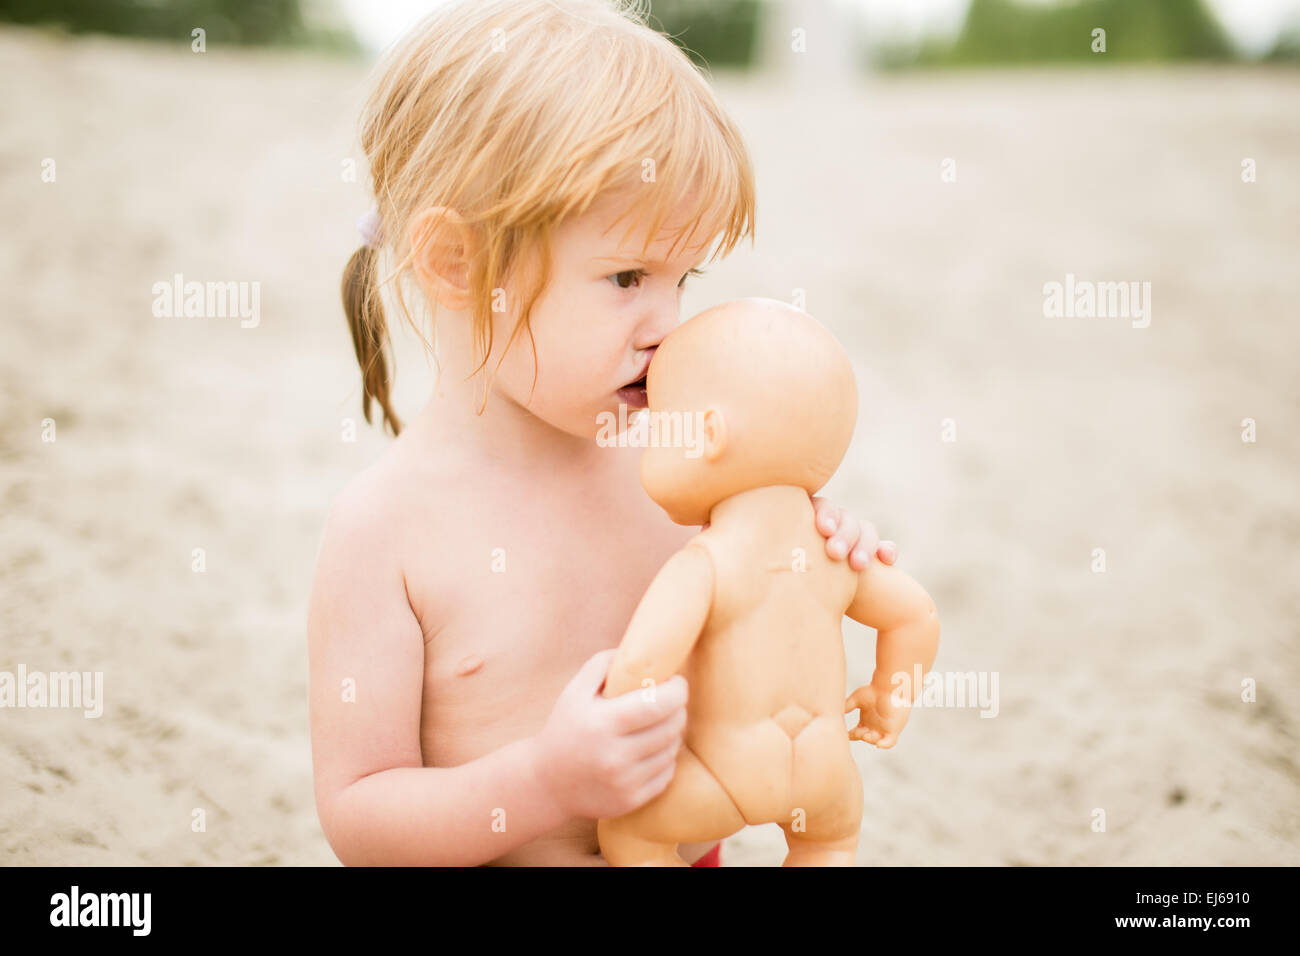 Toddler Girl Kissing Baby Doll At The Beach On Hot Summer Day Baby Playing On Sand